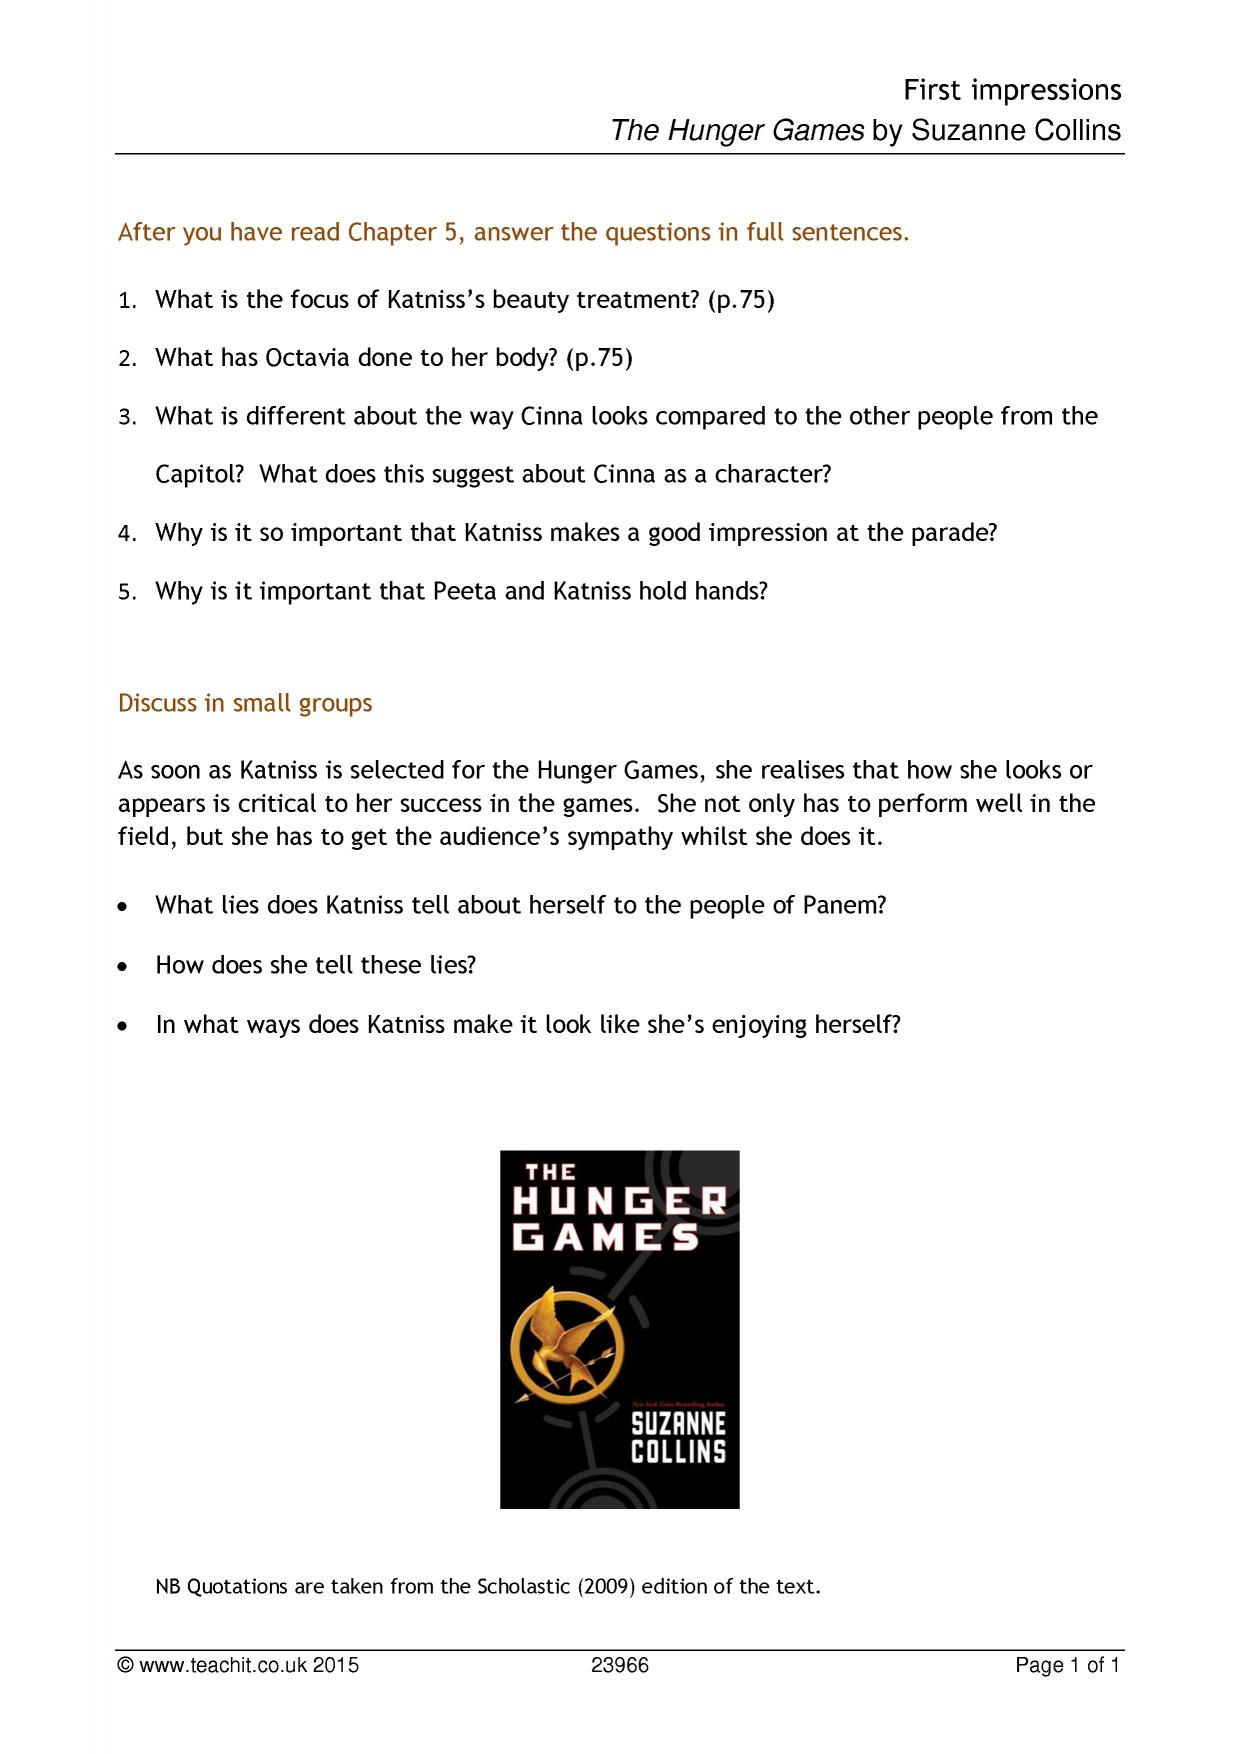 5 paragraph essay on the hunger games Free essay: the hunger games novel written by suzanne collins reflects  significant issues in the reality world nowadays which relate to the humanity, the.